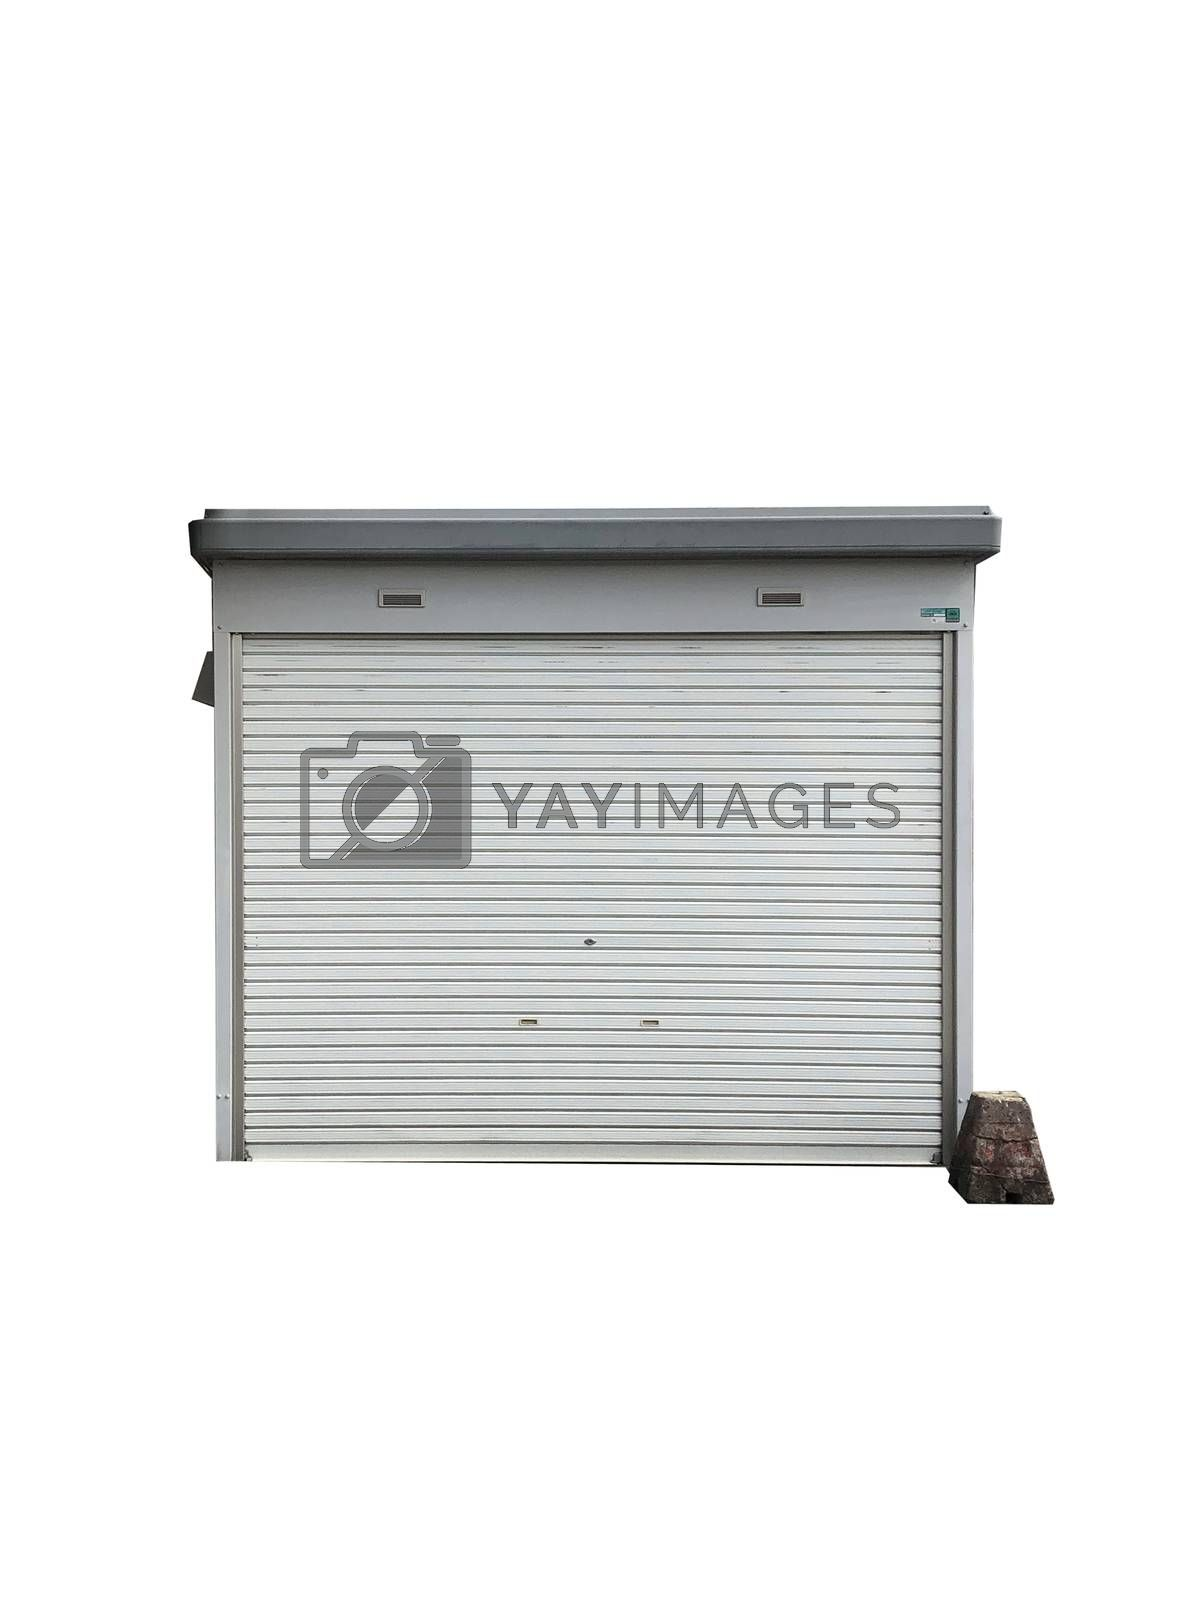 Front view of garage on white background